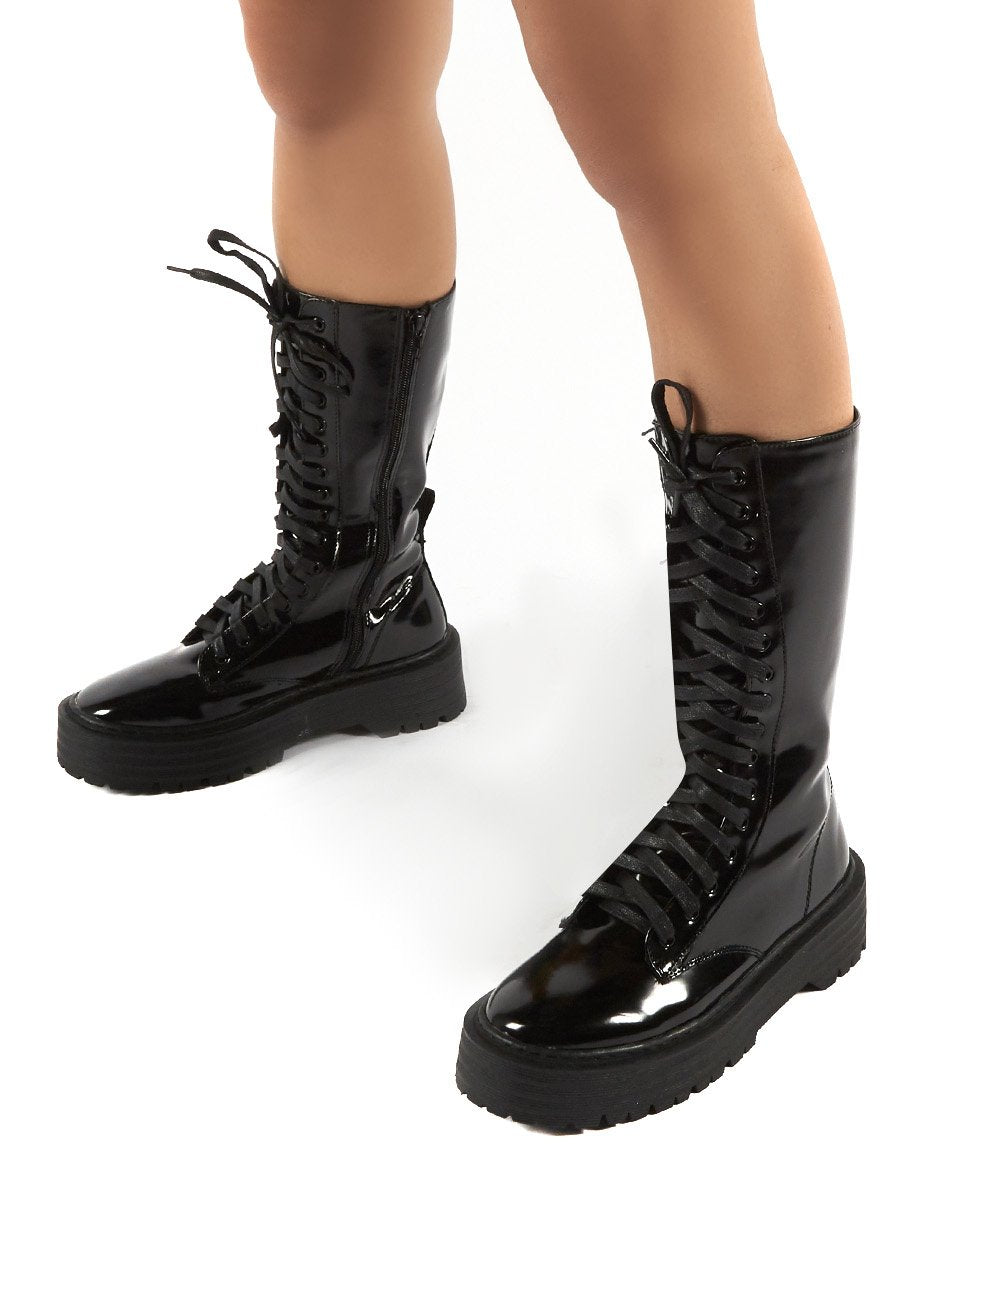 Kendall Smooth Black PU Lace Up Chunky Knee High Boots